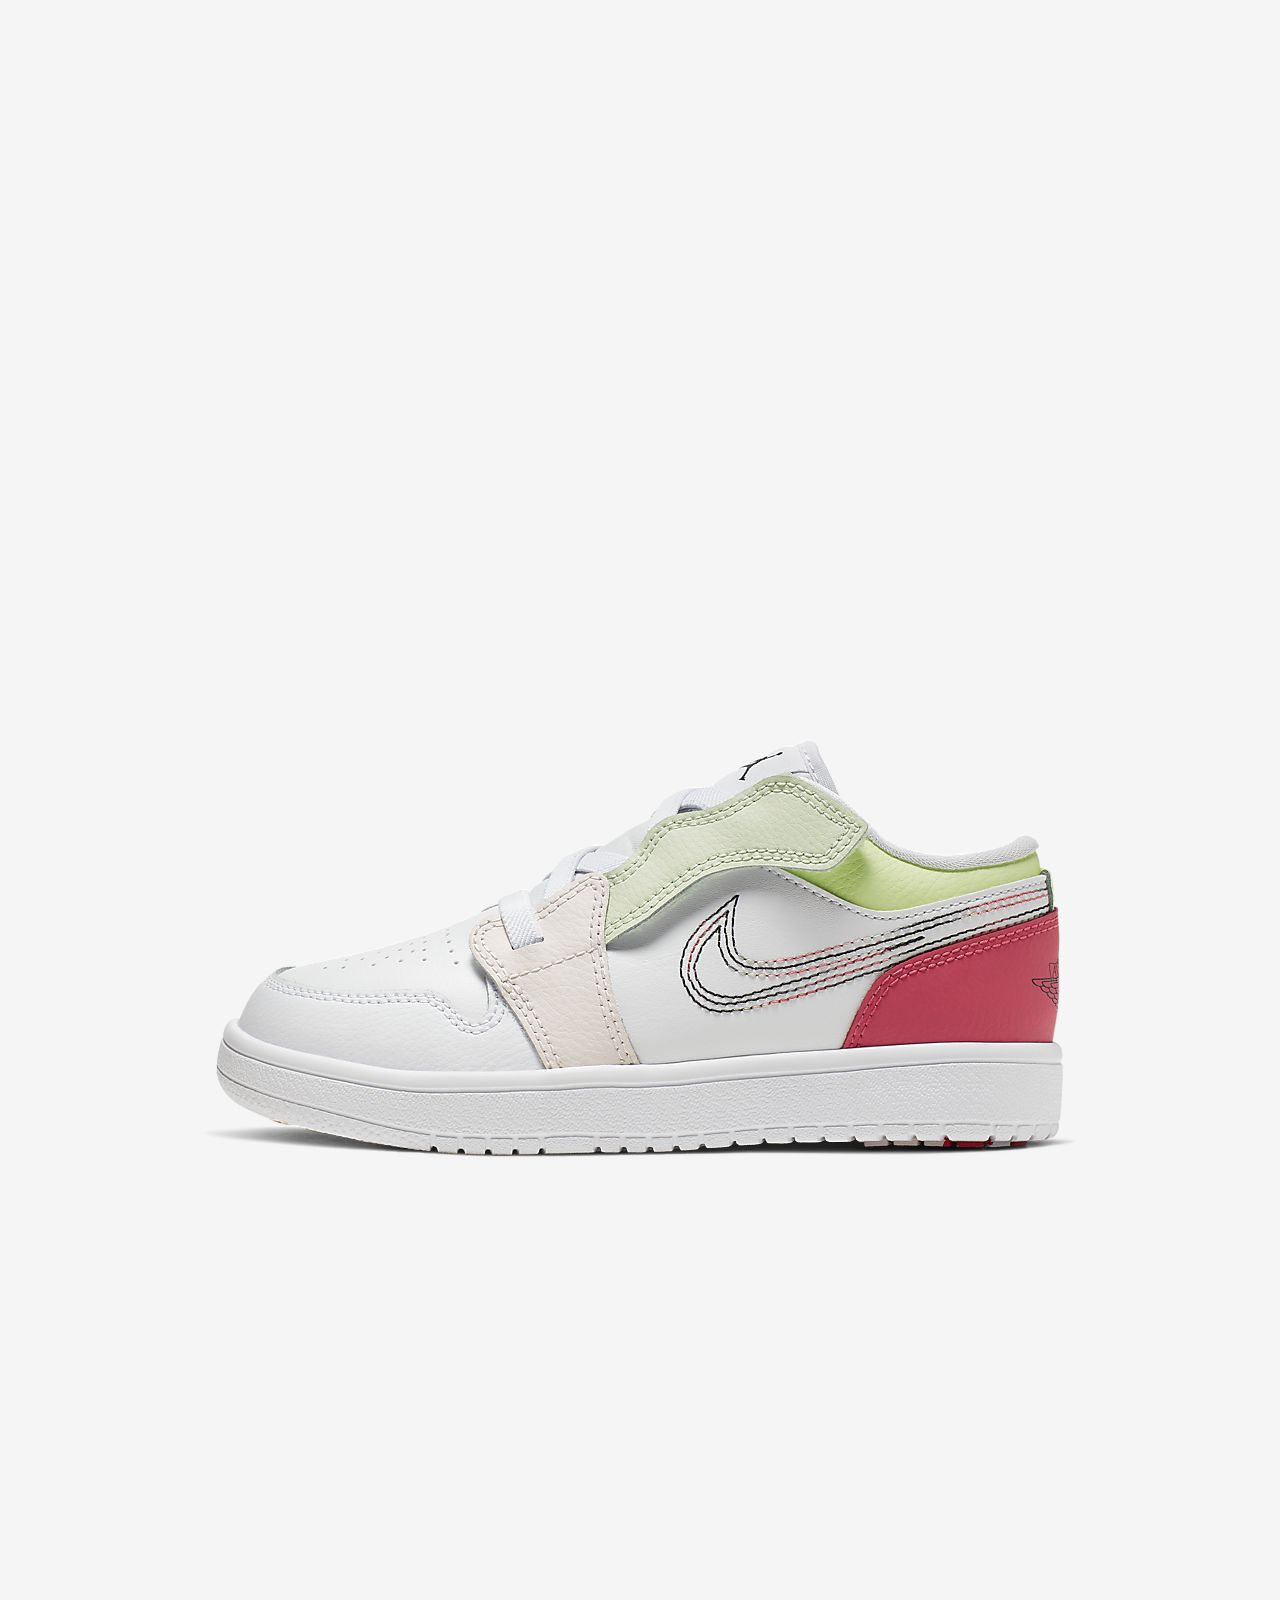 Jordan 1 Low Alt Little Kids' Shoe